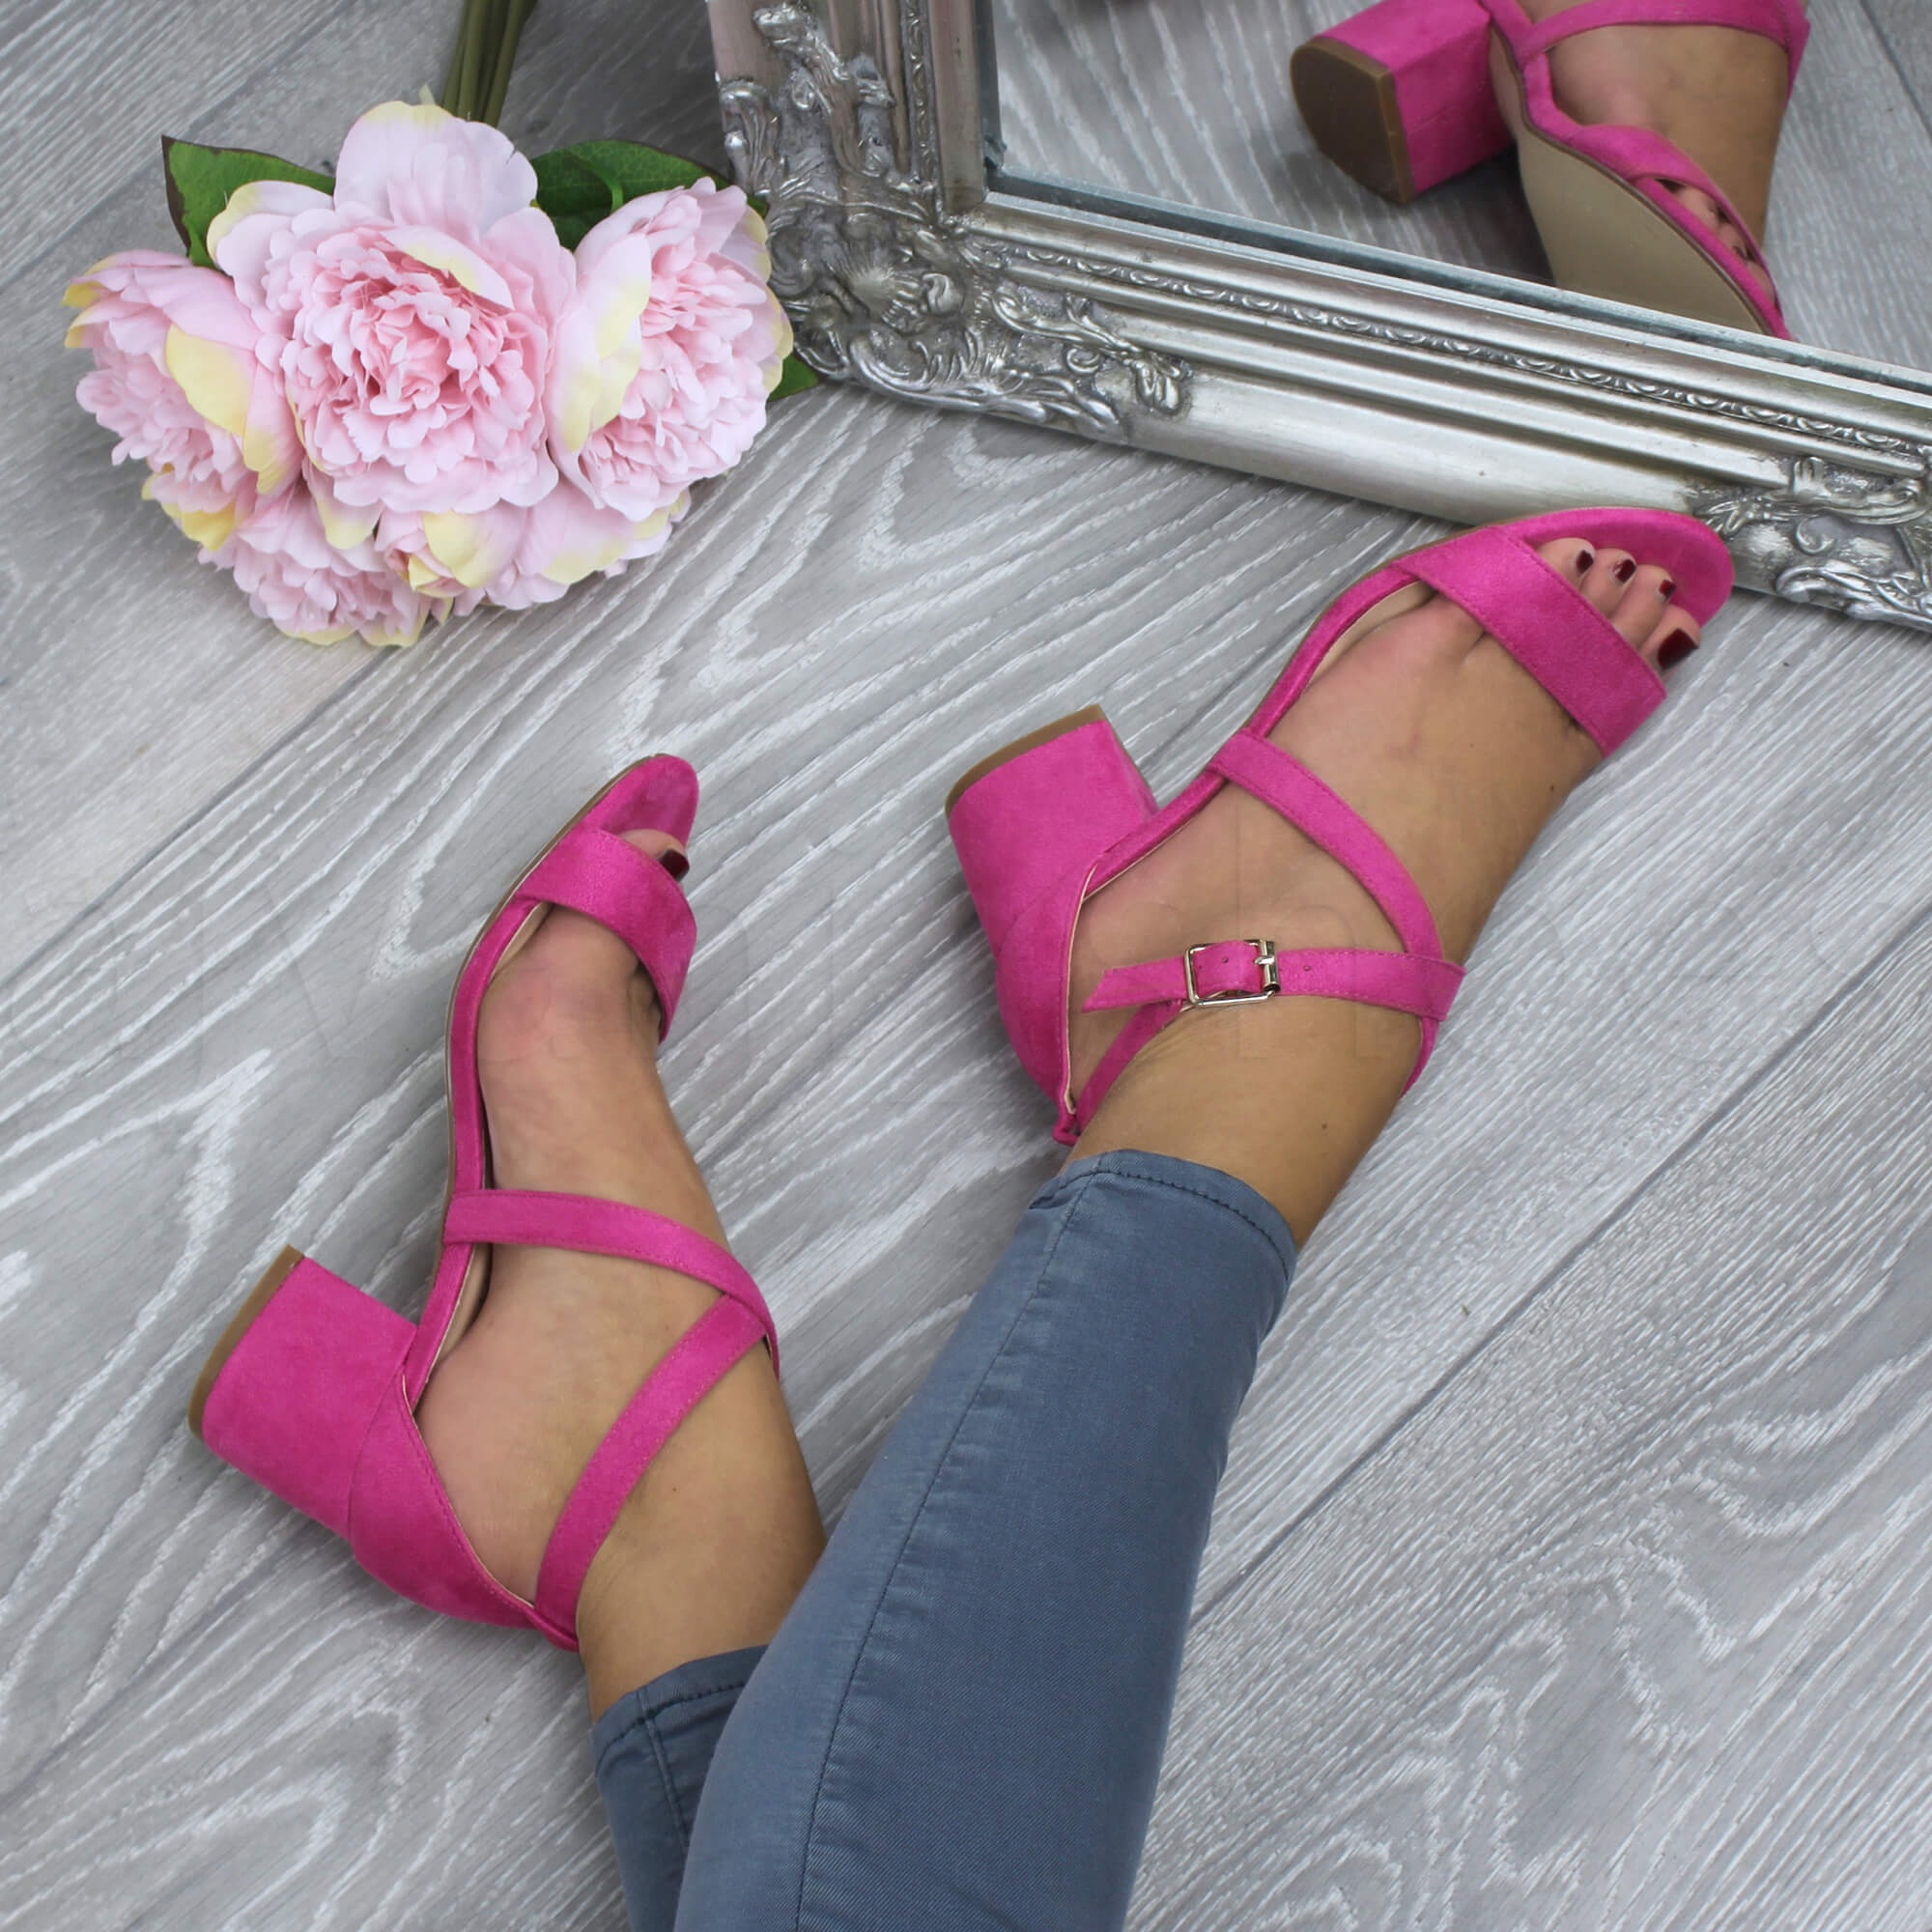 WOMENS-LADIES-MID-LOW-BLOCK-HEEL-CROSS-STRAPS-PARTY-STRAPPY-SANDALS-SHOES-SIZE thumbnail 25